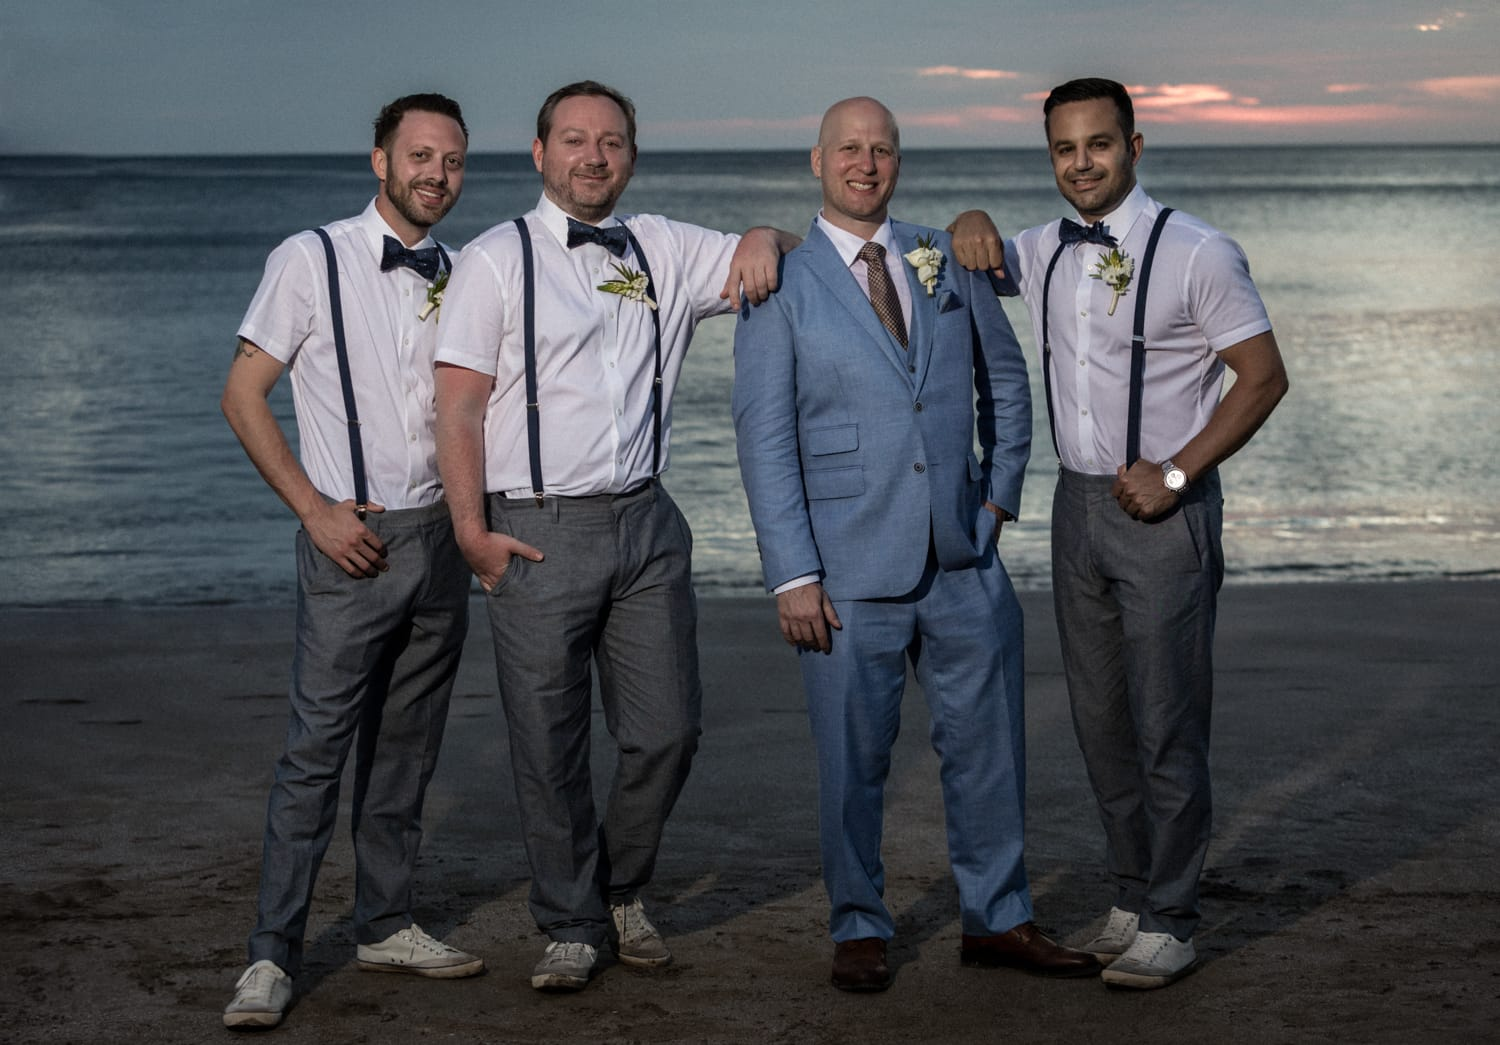 Wedding photo of groom with groomsmen on beach at sunset.